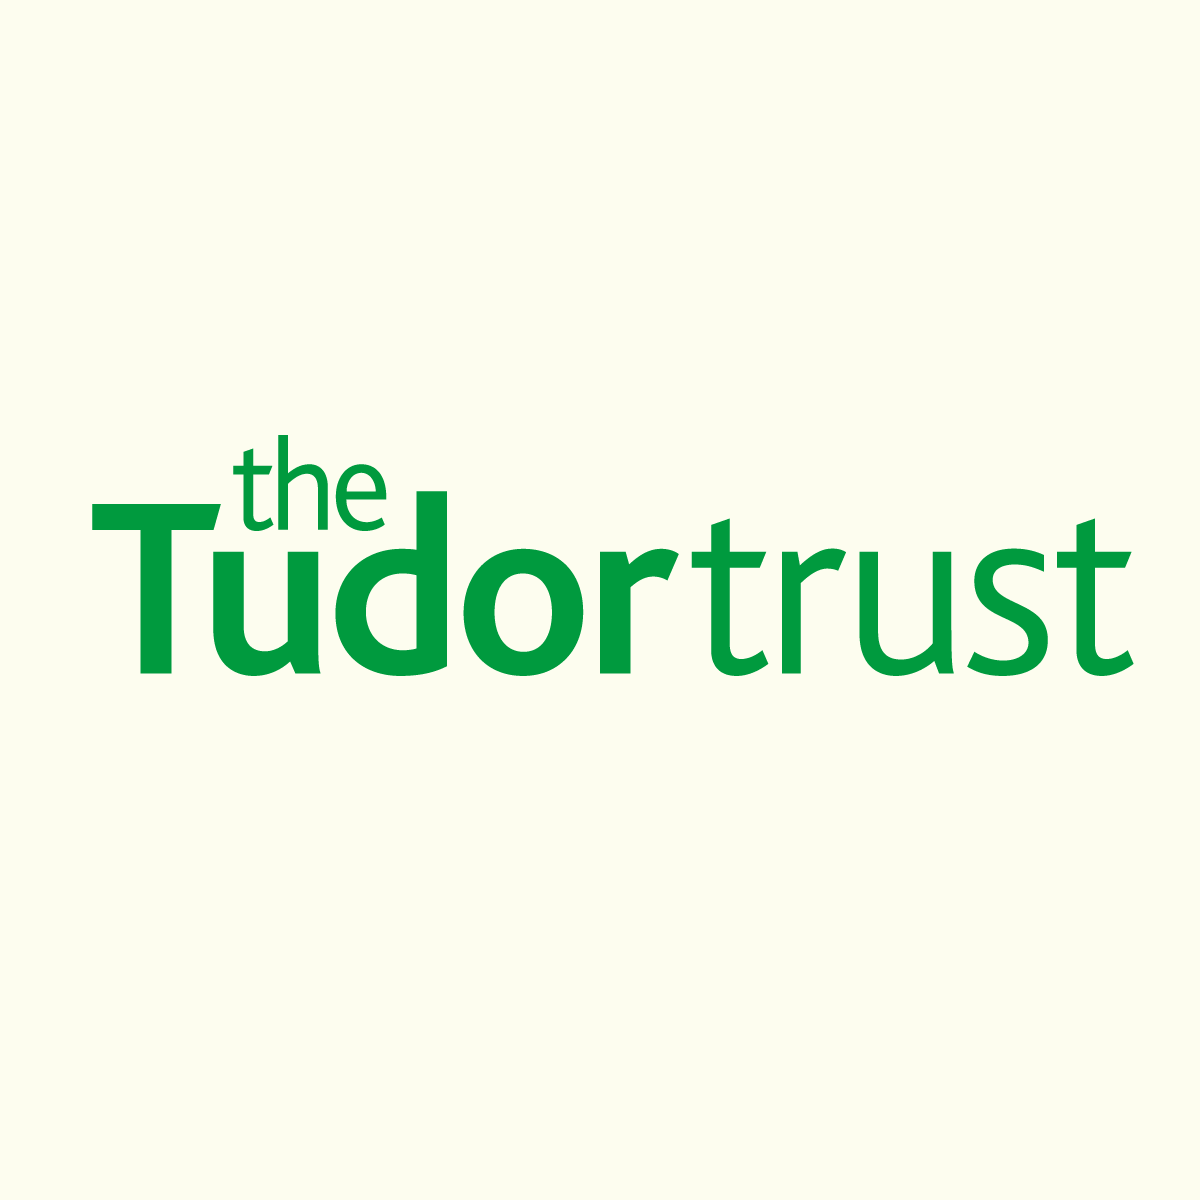 the-tudor-trust-sq1.png